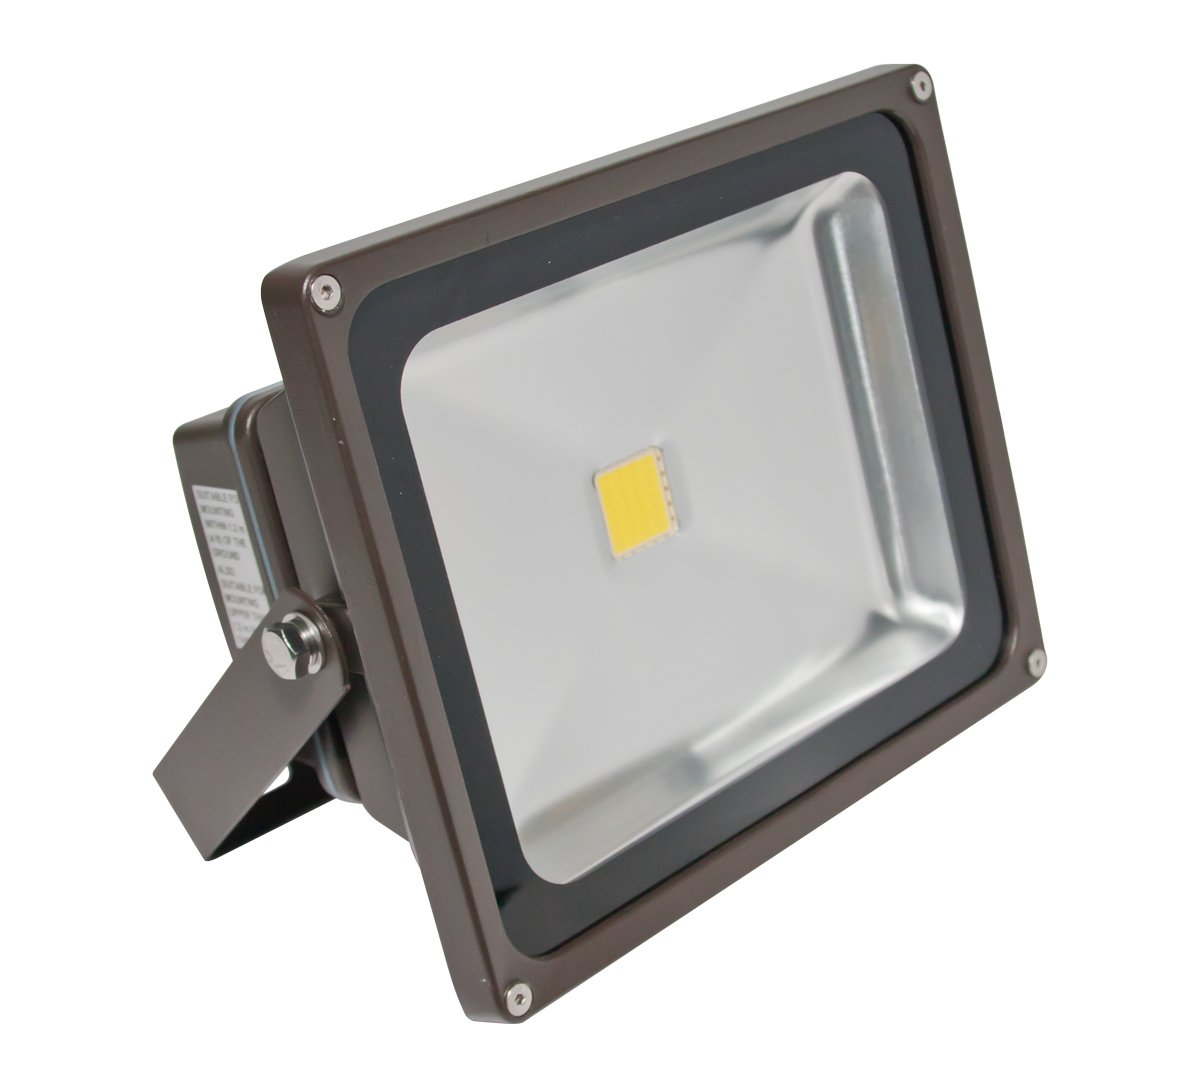 American lighting fl 301 45 db panorama pro 301 series design led american lighting fl 301 45 db panorama pro 301 series design led flood light with yoke mounting bracket 36w 4500k 2350 lumens dark bronze amazon aloadofball Image collections